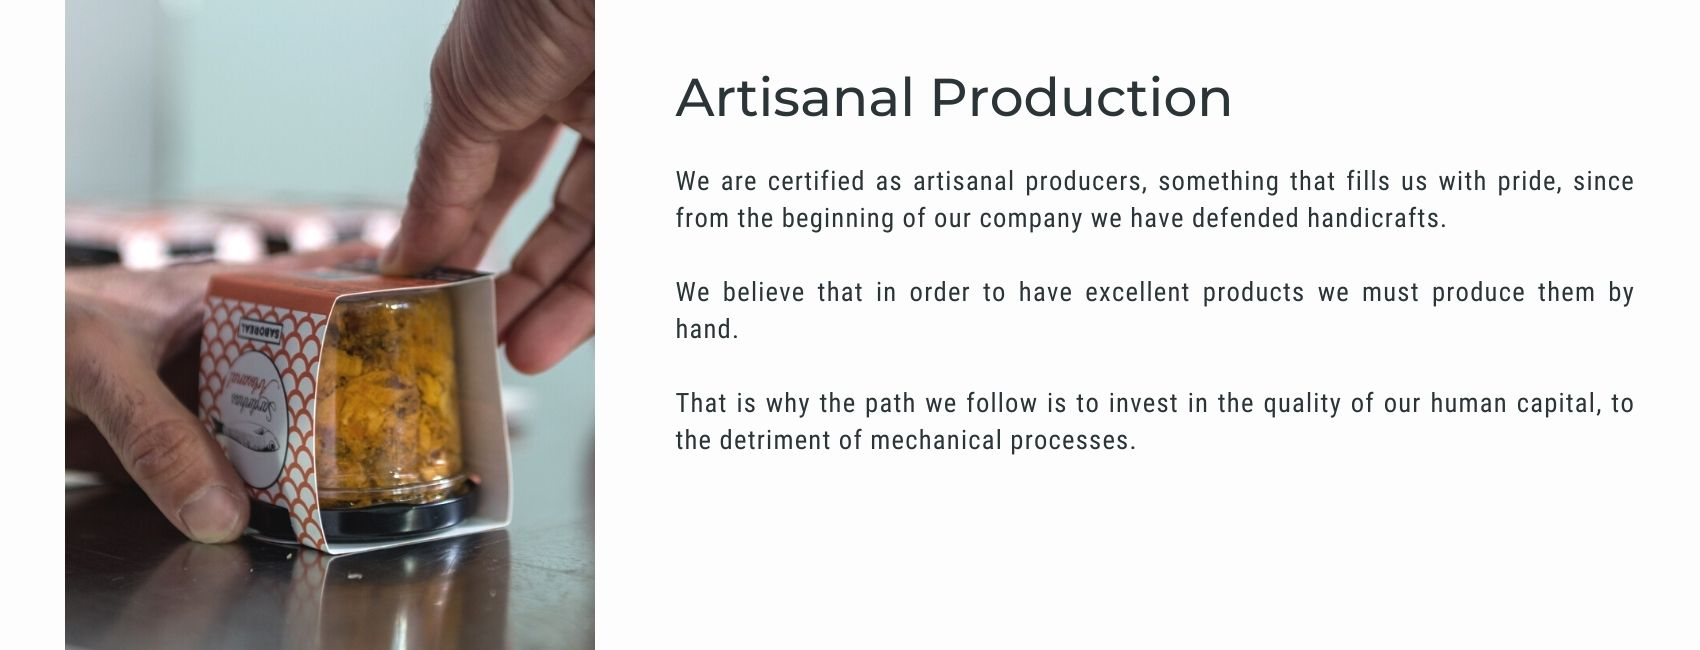 We are certified as artisanal producers, something that fills us with pride, since from the beginning of our company we have defended handicrafts.  We believe that in order to have excellent products we must produce them by hand.  That is why the path we follow is to invest in the quality of our human capital, to the detriment of mechanical processes.